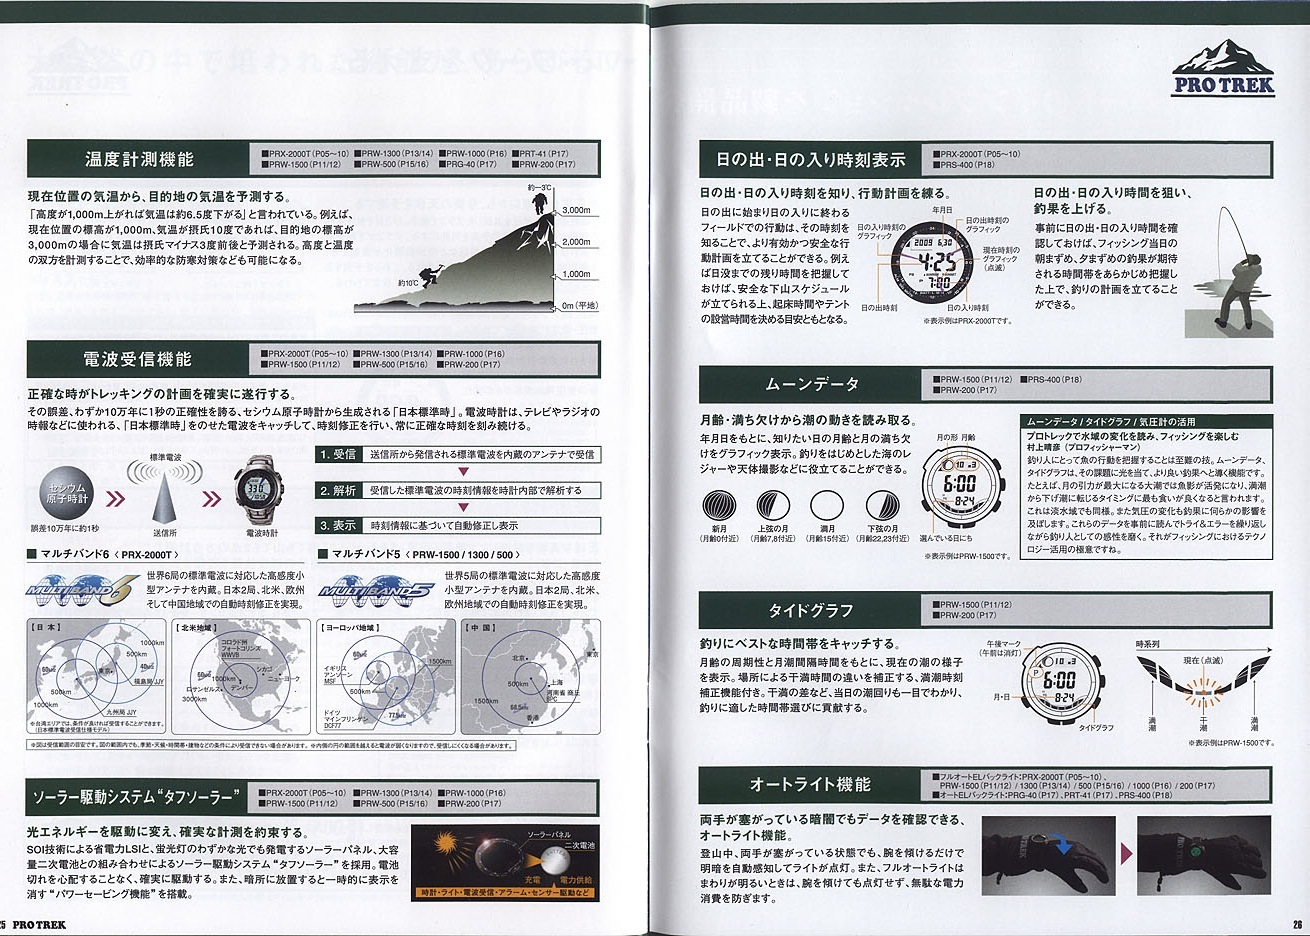 Casio-Pro-Trek-Collection-Summer-2009-Page-14.jpg